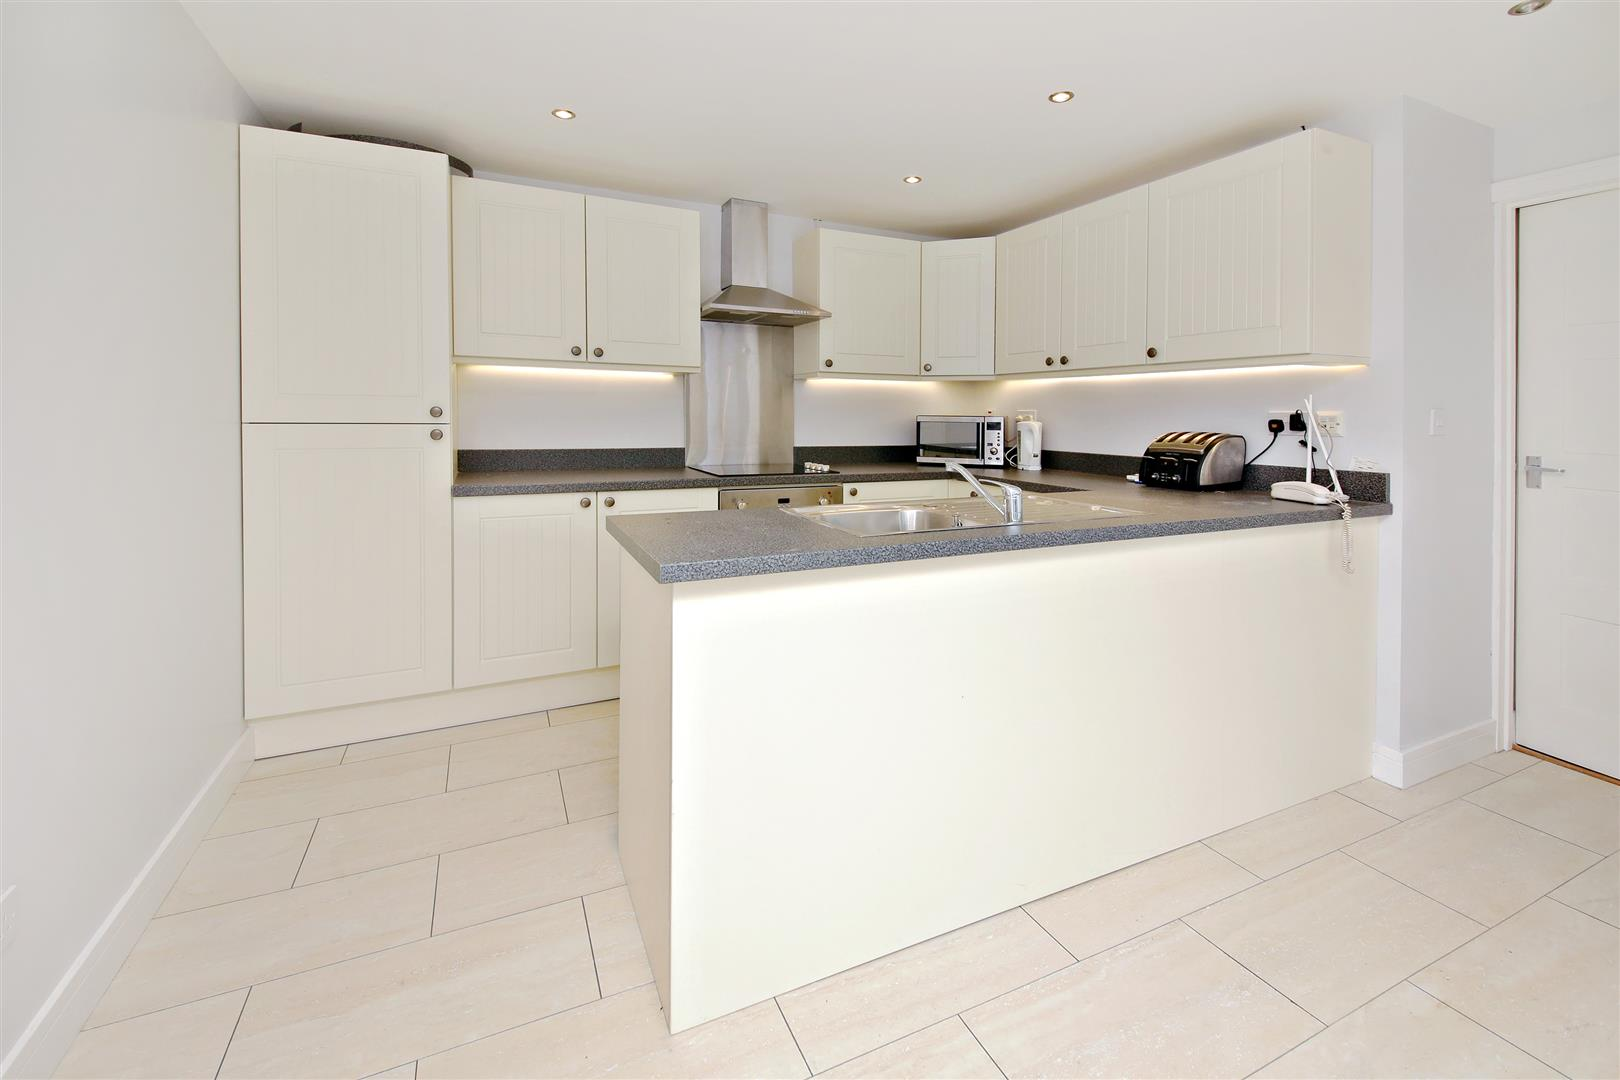 3 bed for sale in Station Road, Bricket Wood - (Property Image 9)